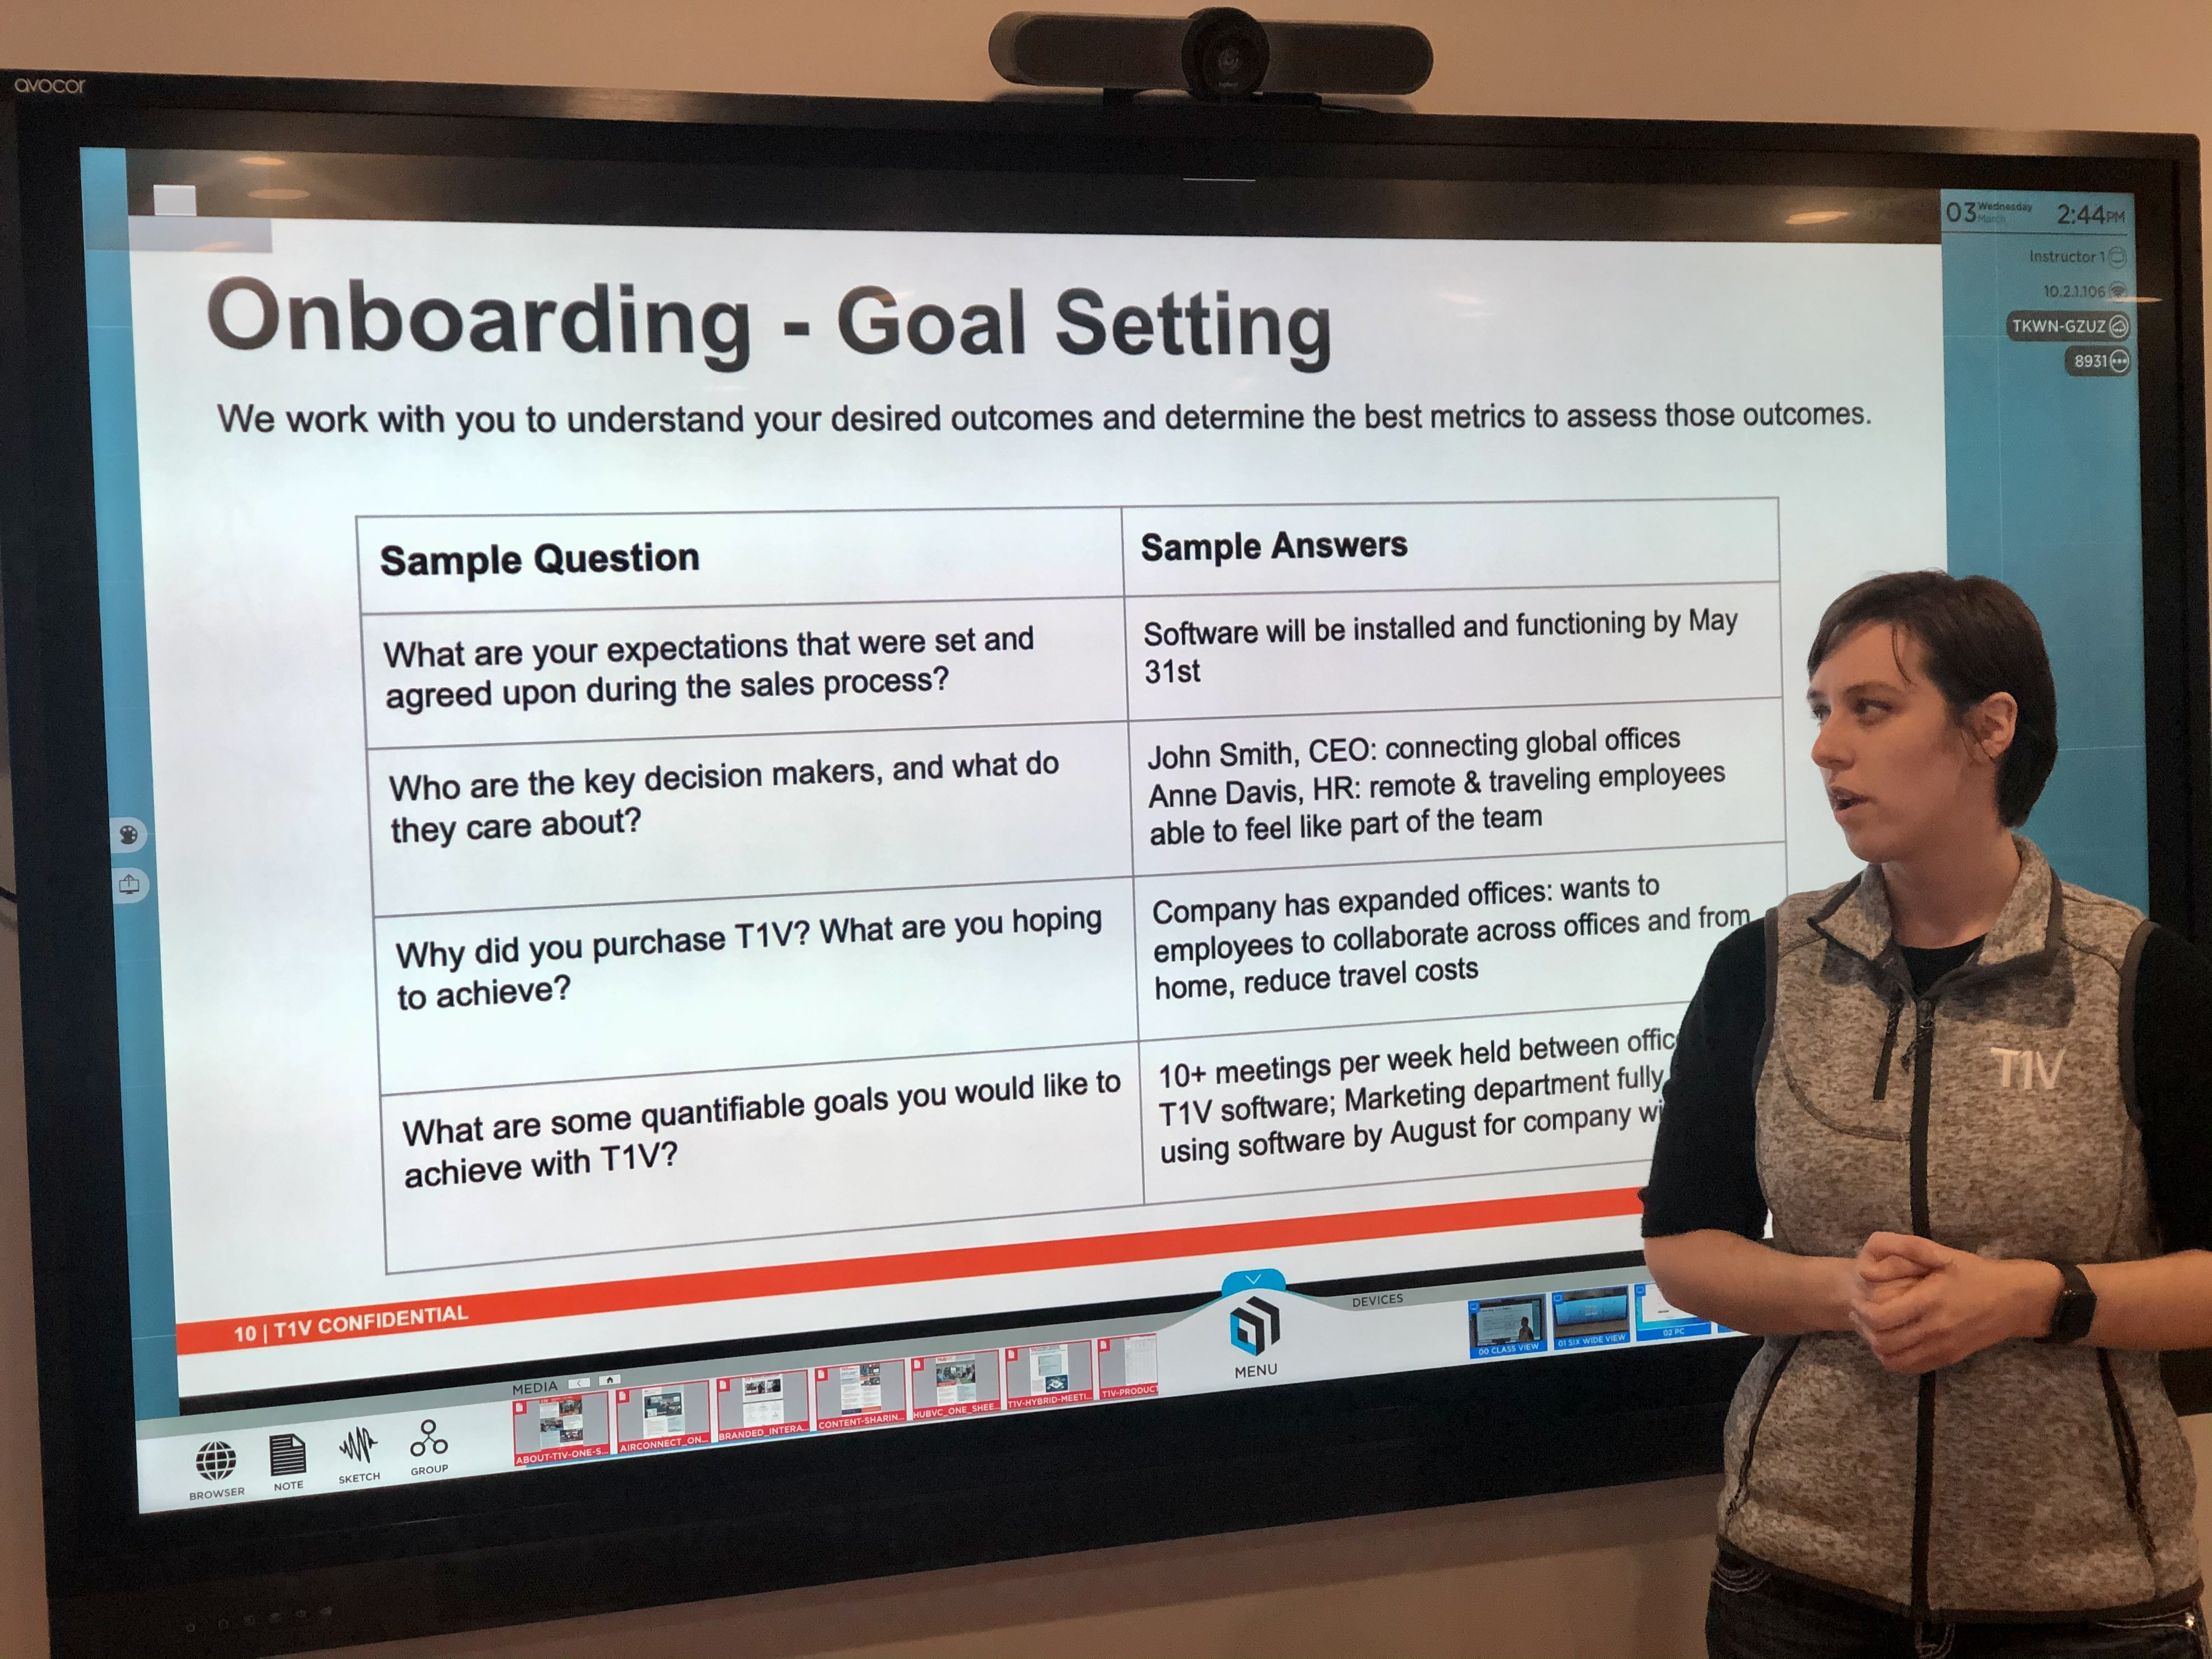 t1v-in-3-onboarding-and-goal-setting-with-t1v